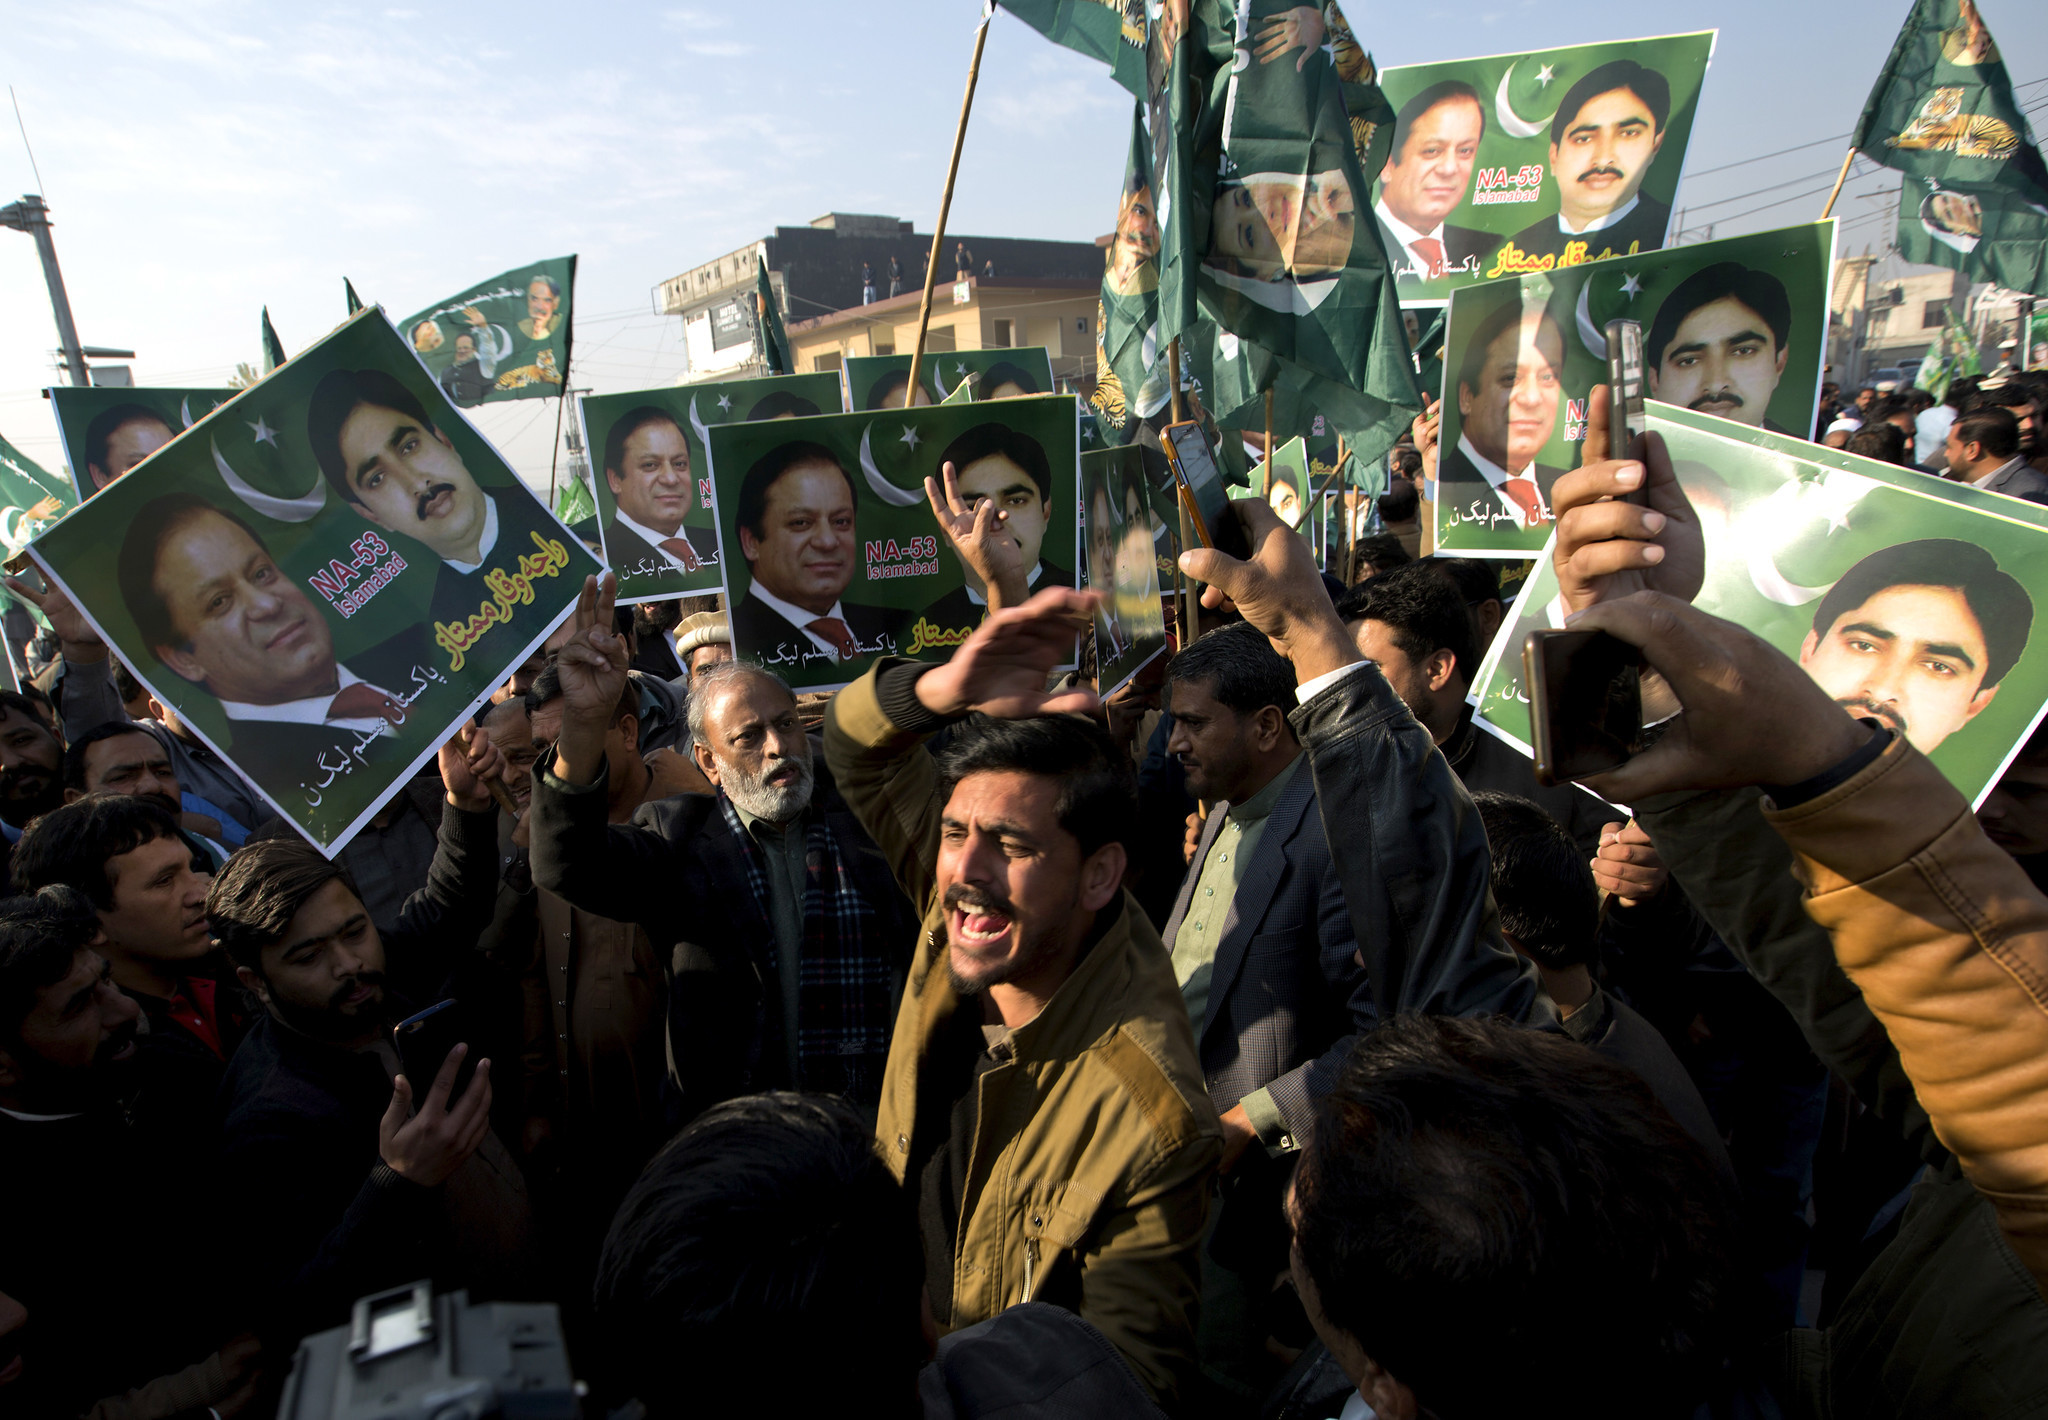 Pakistan's former prime minister sentenced to 7 years for corruption